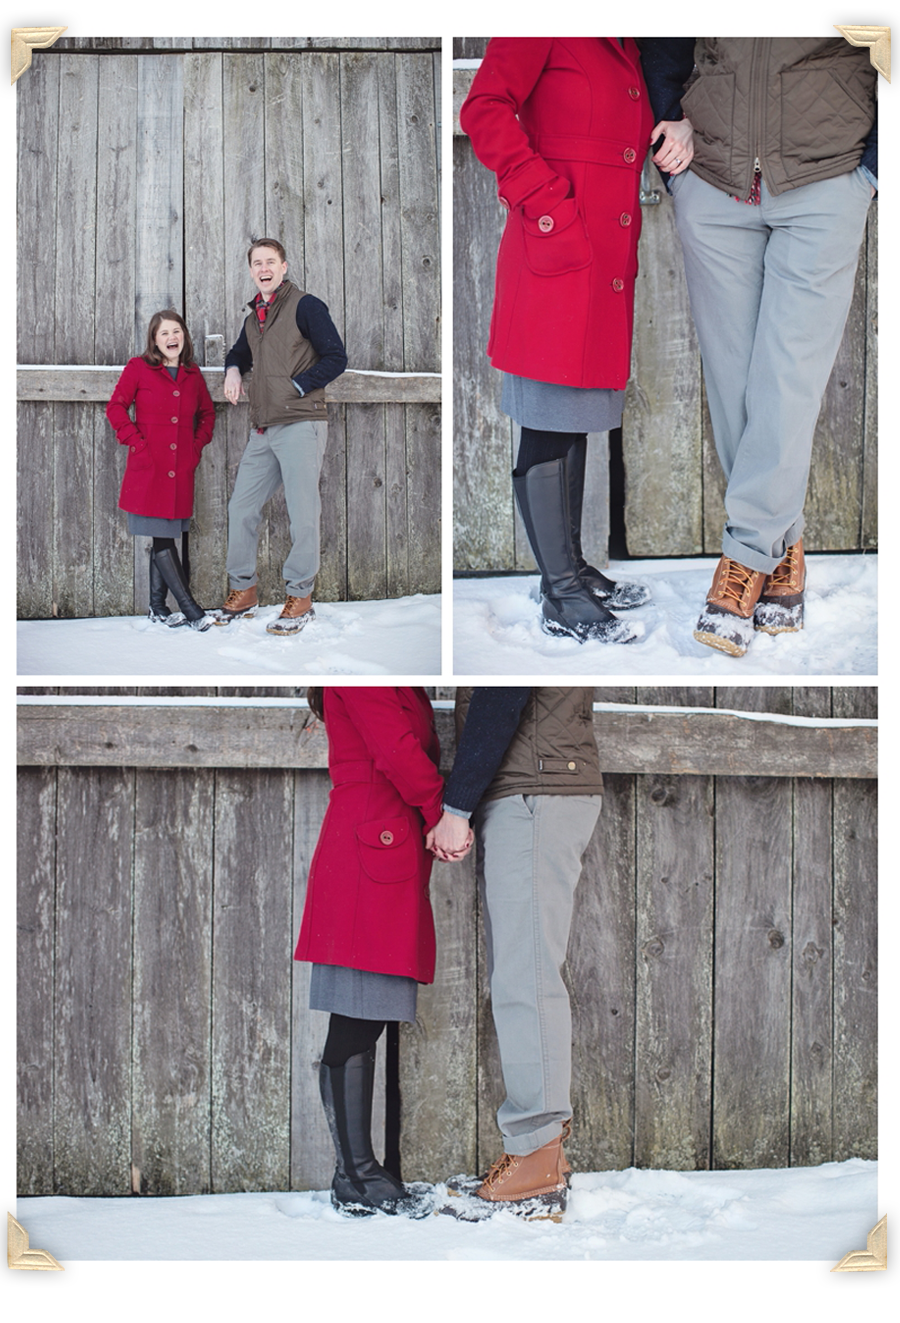 Freeport_Maine_WolfesNeck_Engagement_Photographer-041